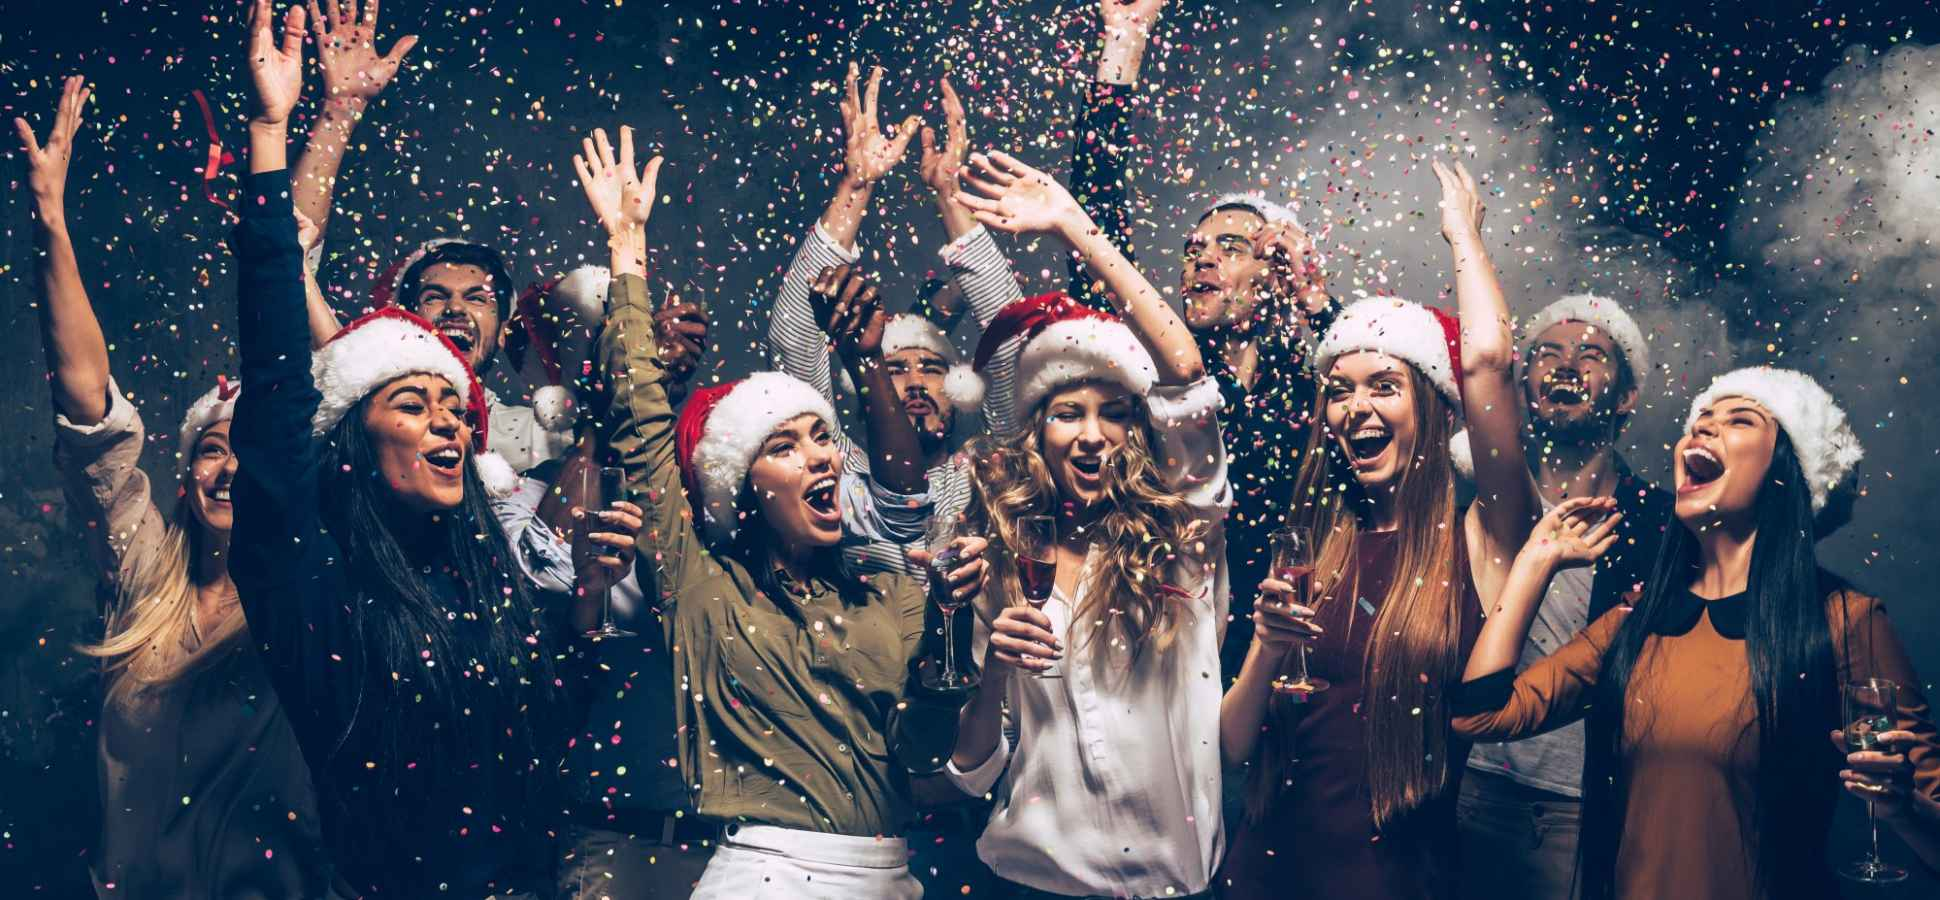 5fe181abcbd6 9 Corporate Holiday Party Ideas Your Employees Will Be Talking About for  Weeks | Inc.com